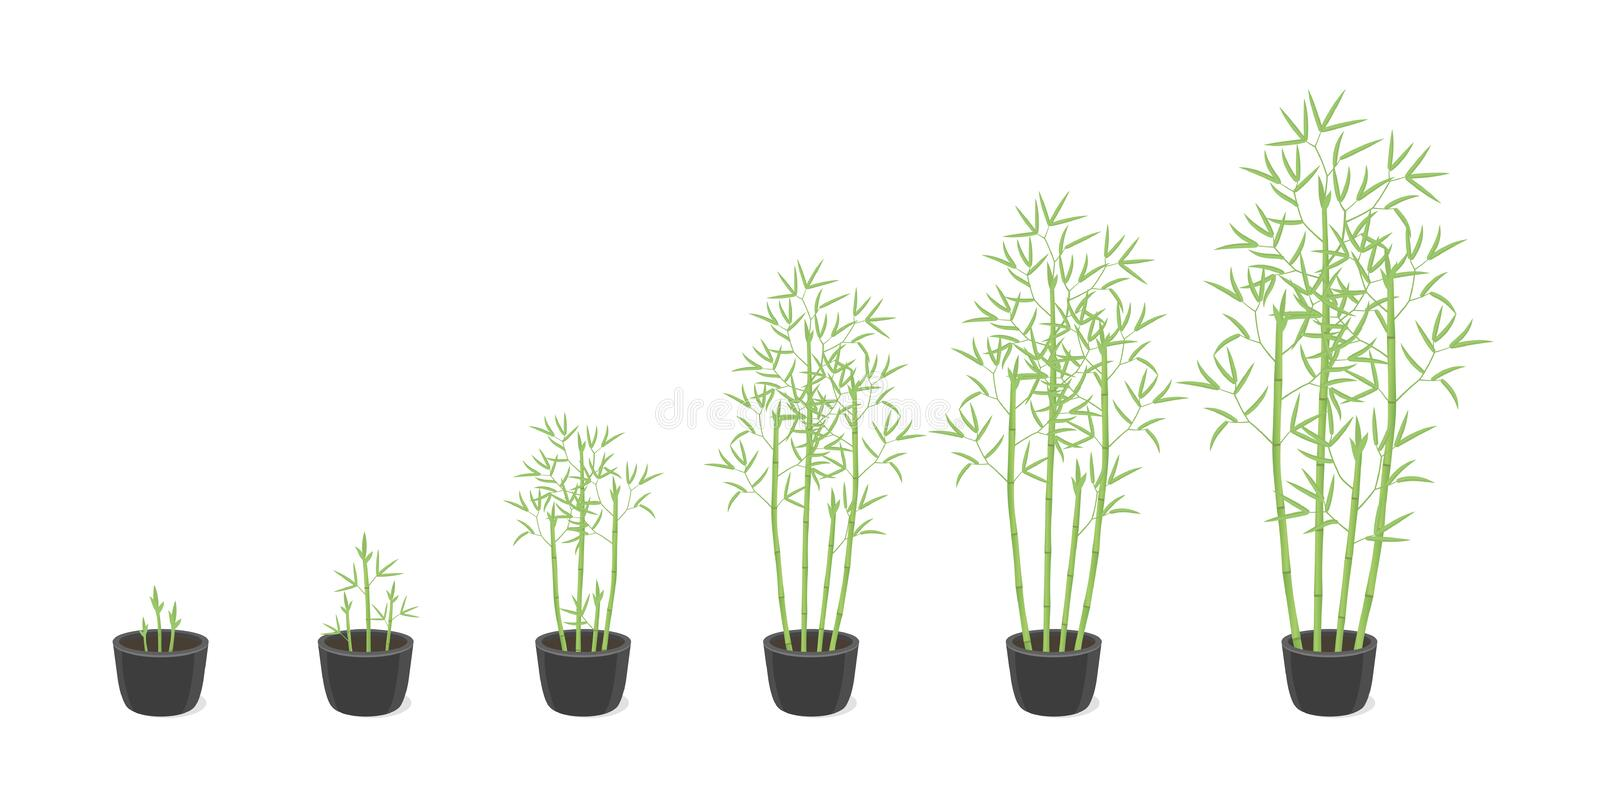 Bamboo bush potted growth stages. Clumping bamboos ripening period progression. Bambusa bambos tree life cycle animation plant. Phases. In a pot at home. Flat vector illustration